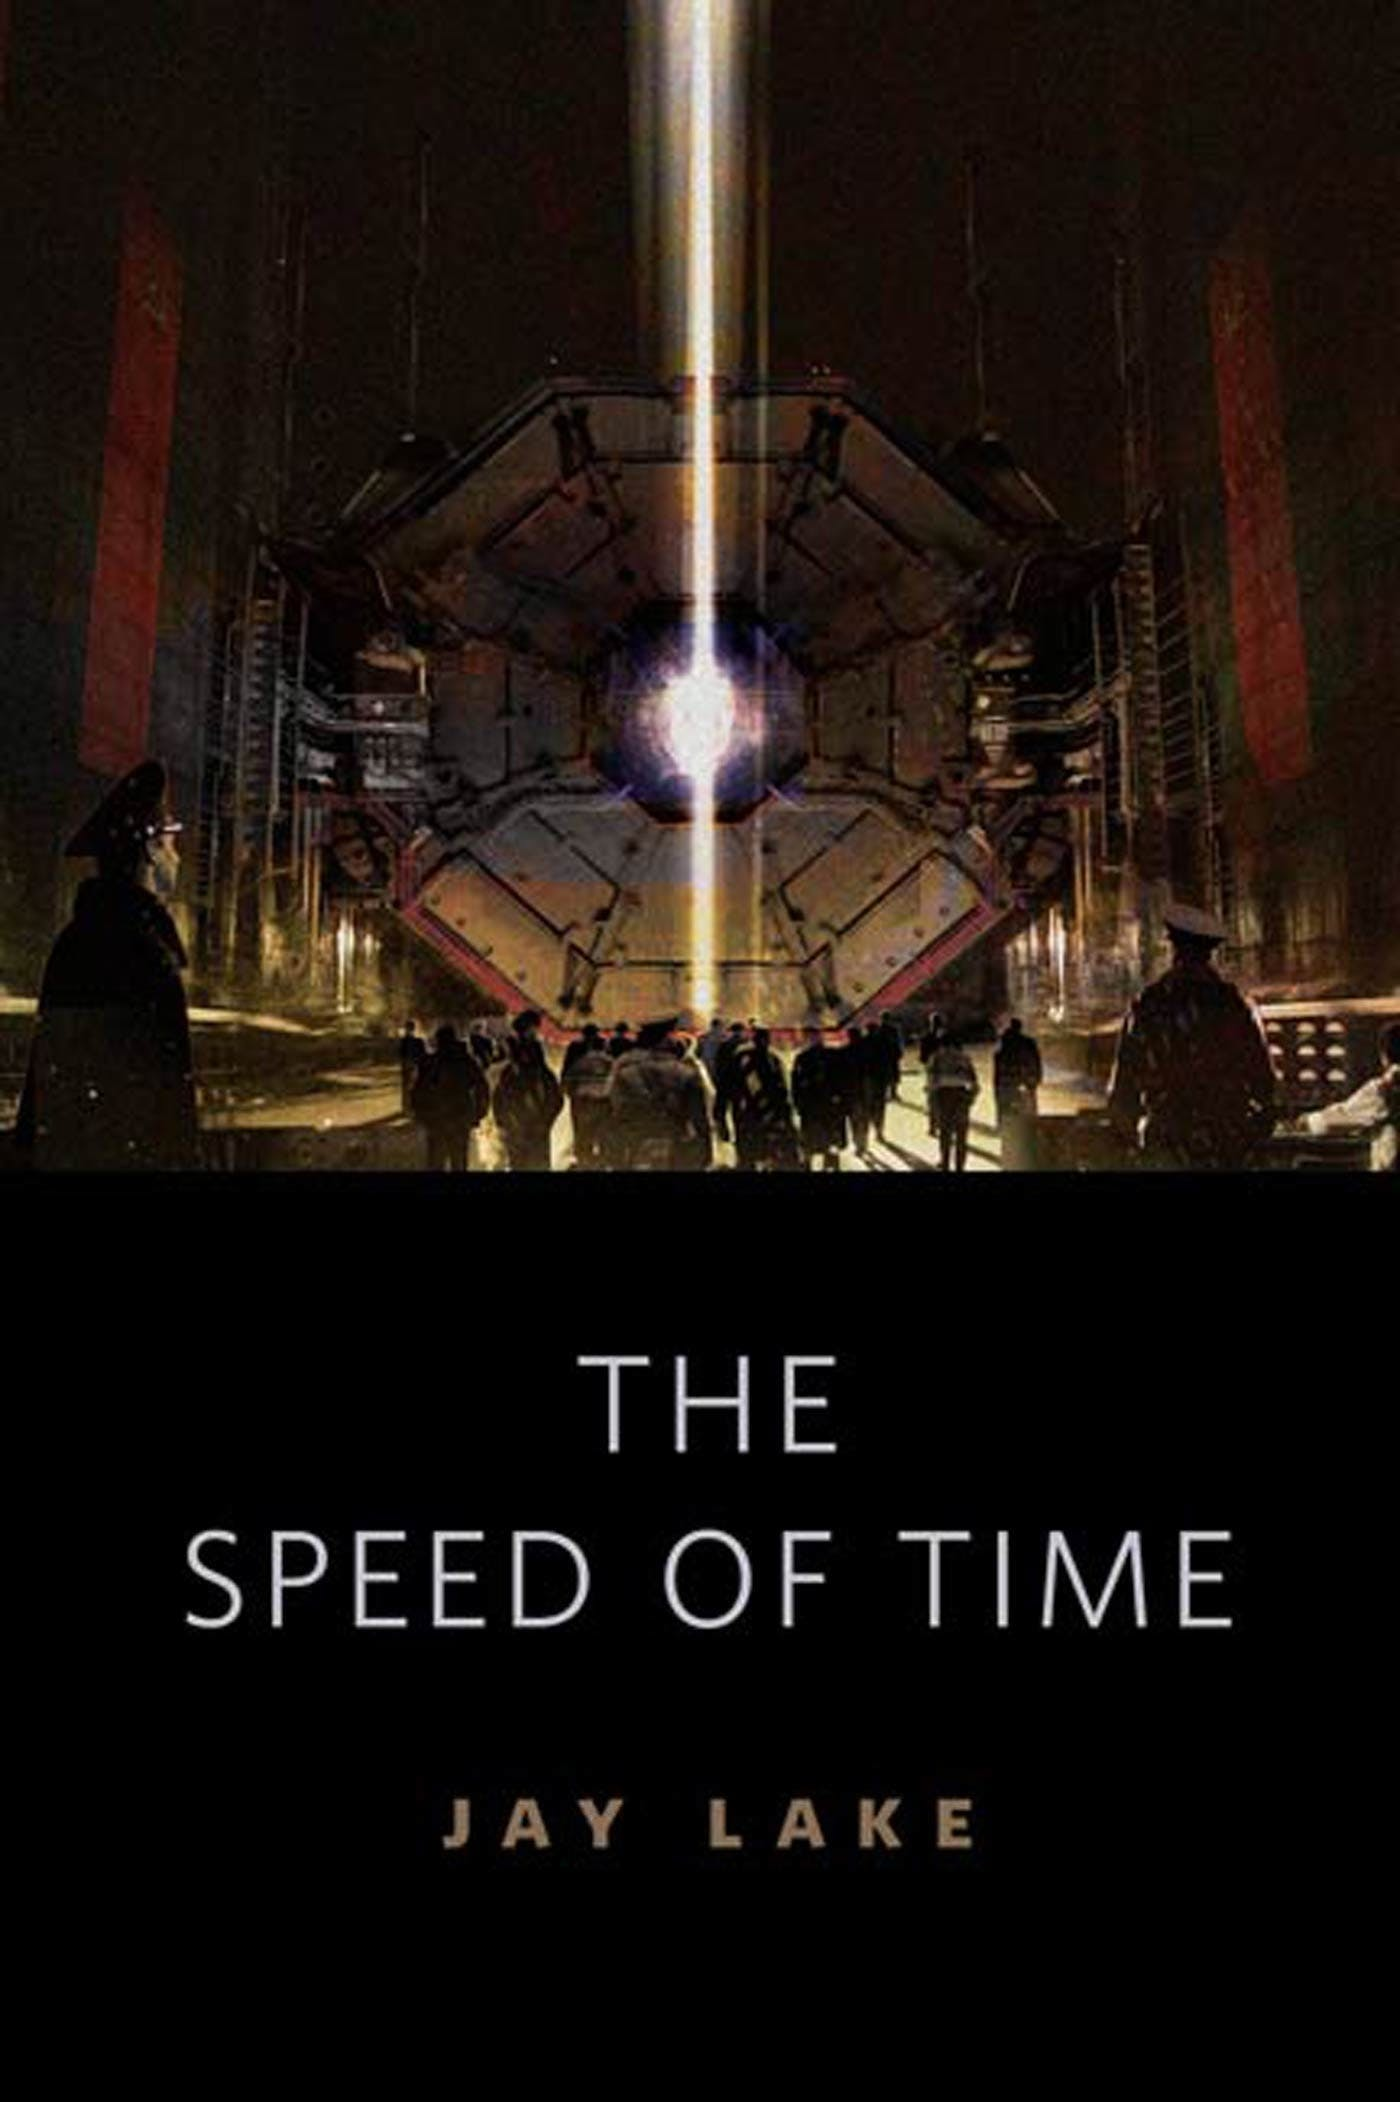 Image of The Speed of Time